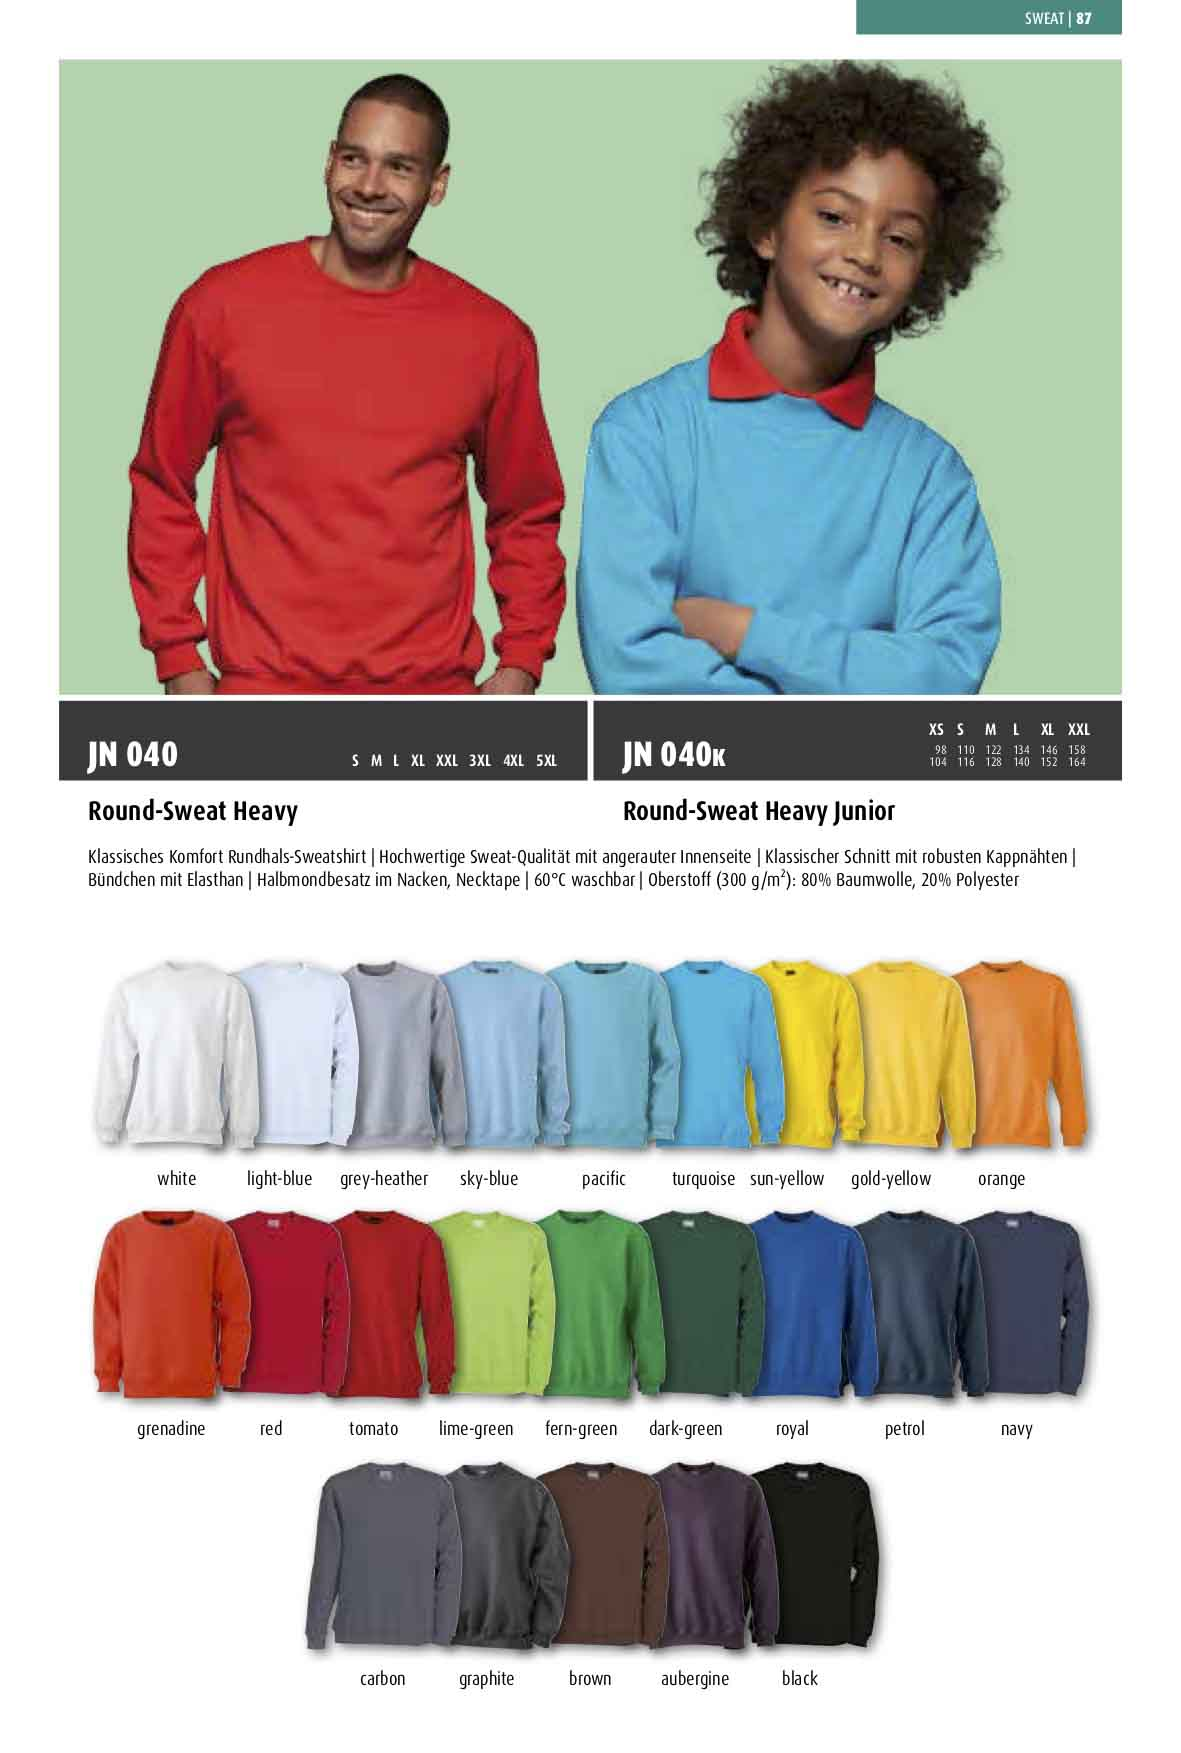 Katalog Sweat-Shirt Farben